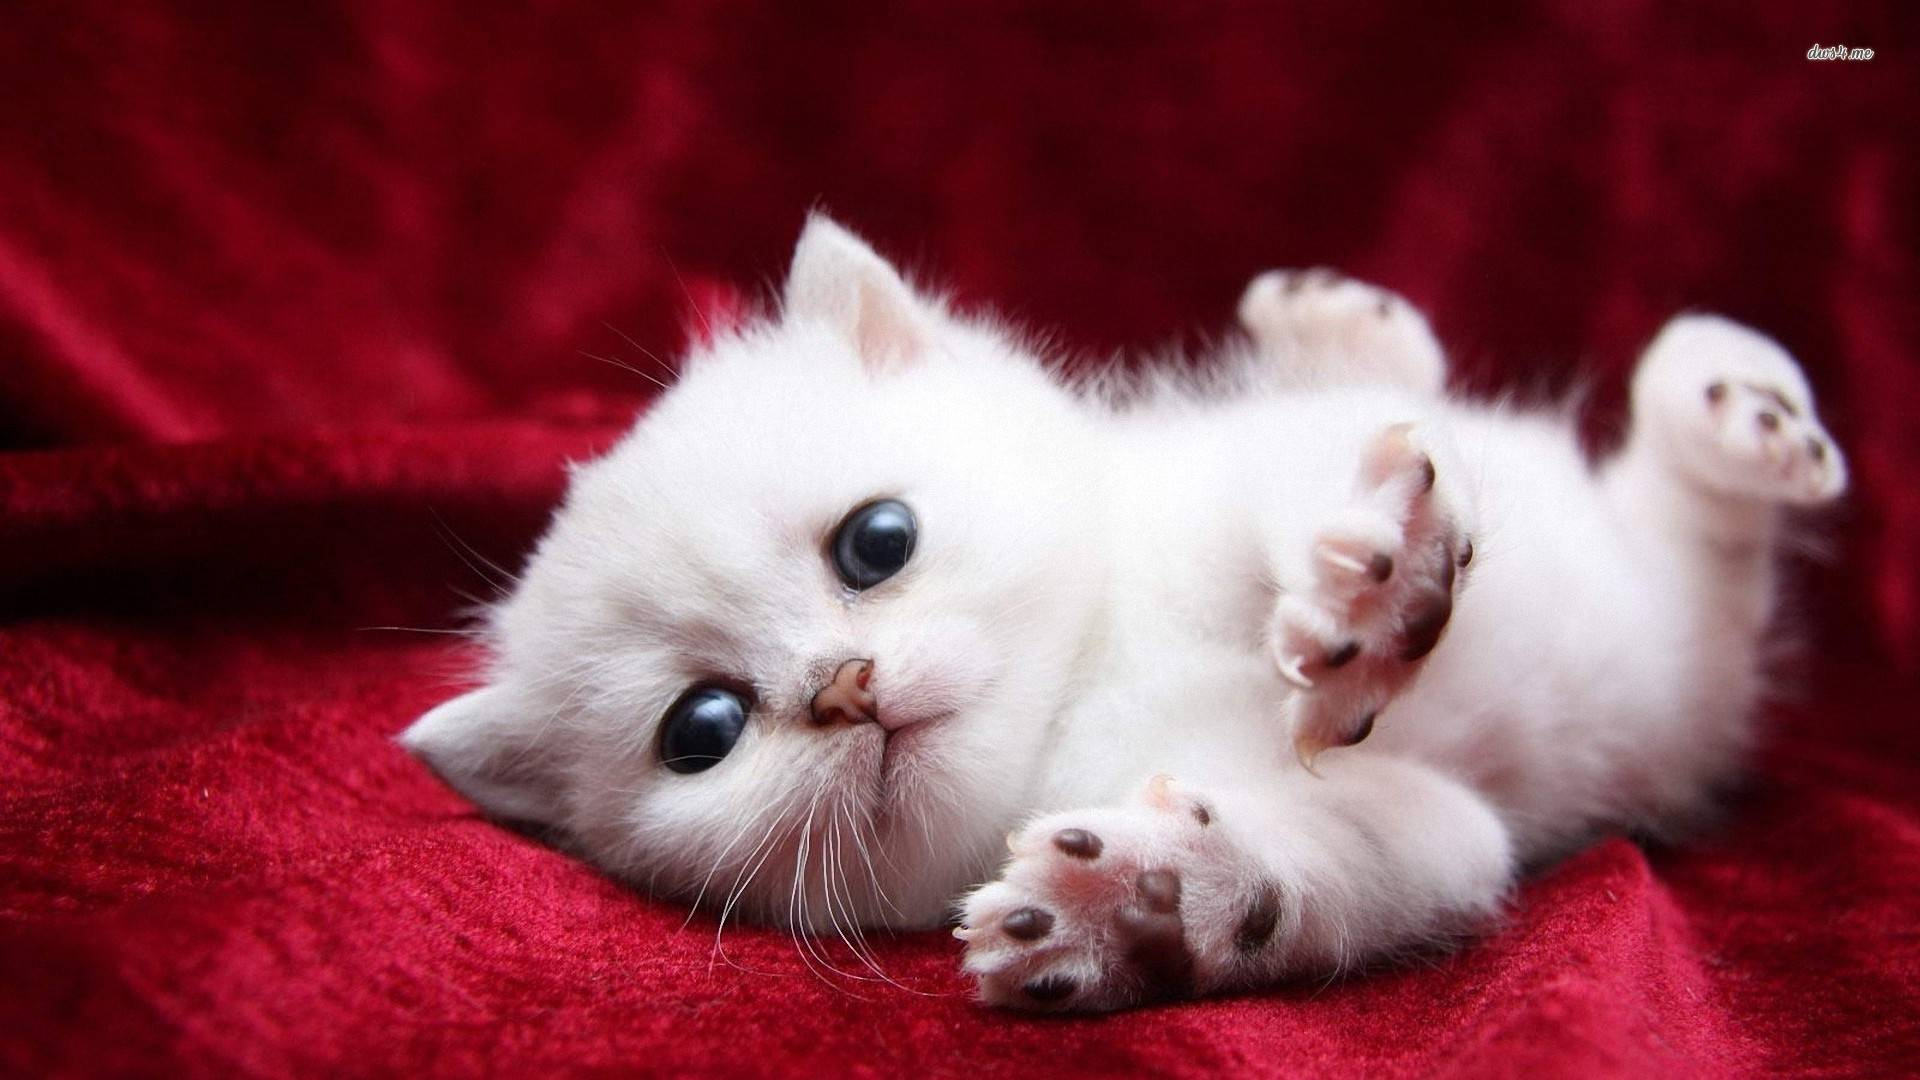 Free Download Super Cute White Kitty Cats Wallpaper 1920x1080 For Your Desktop Mobile Tablet Explore 74 White Cats Wallpaper Cat Desktop Wallpaper Black And White Cat Wallpaper Kittens Desktop Wallpaper